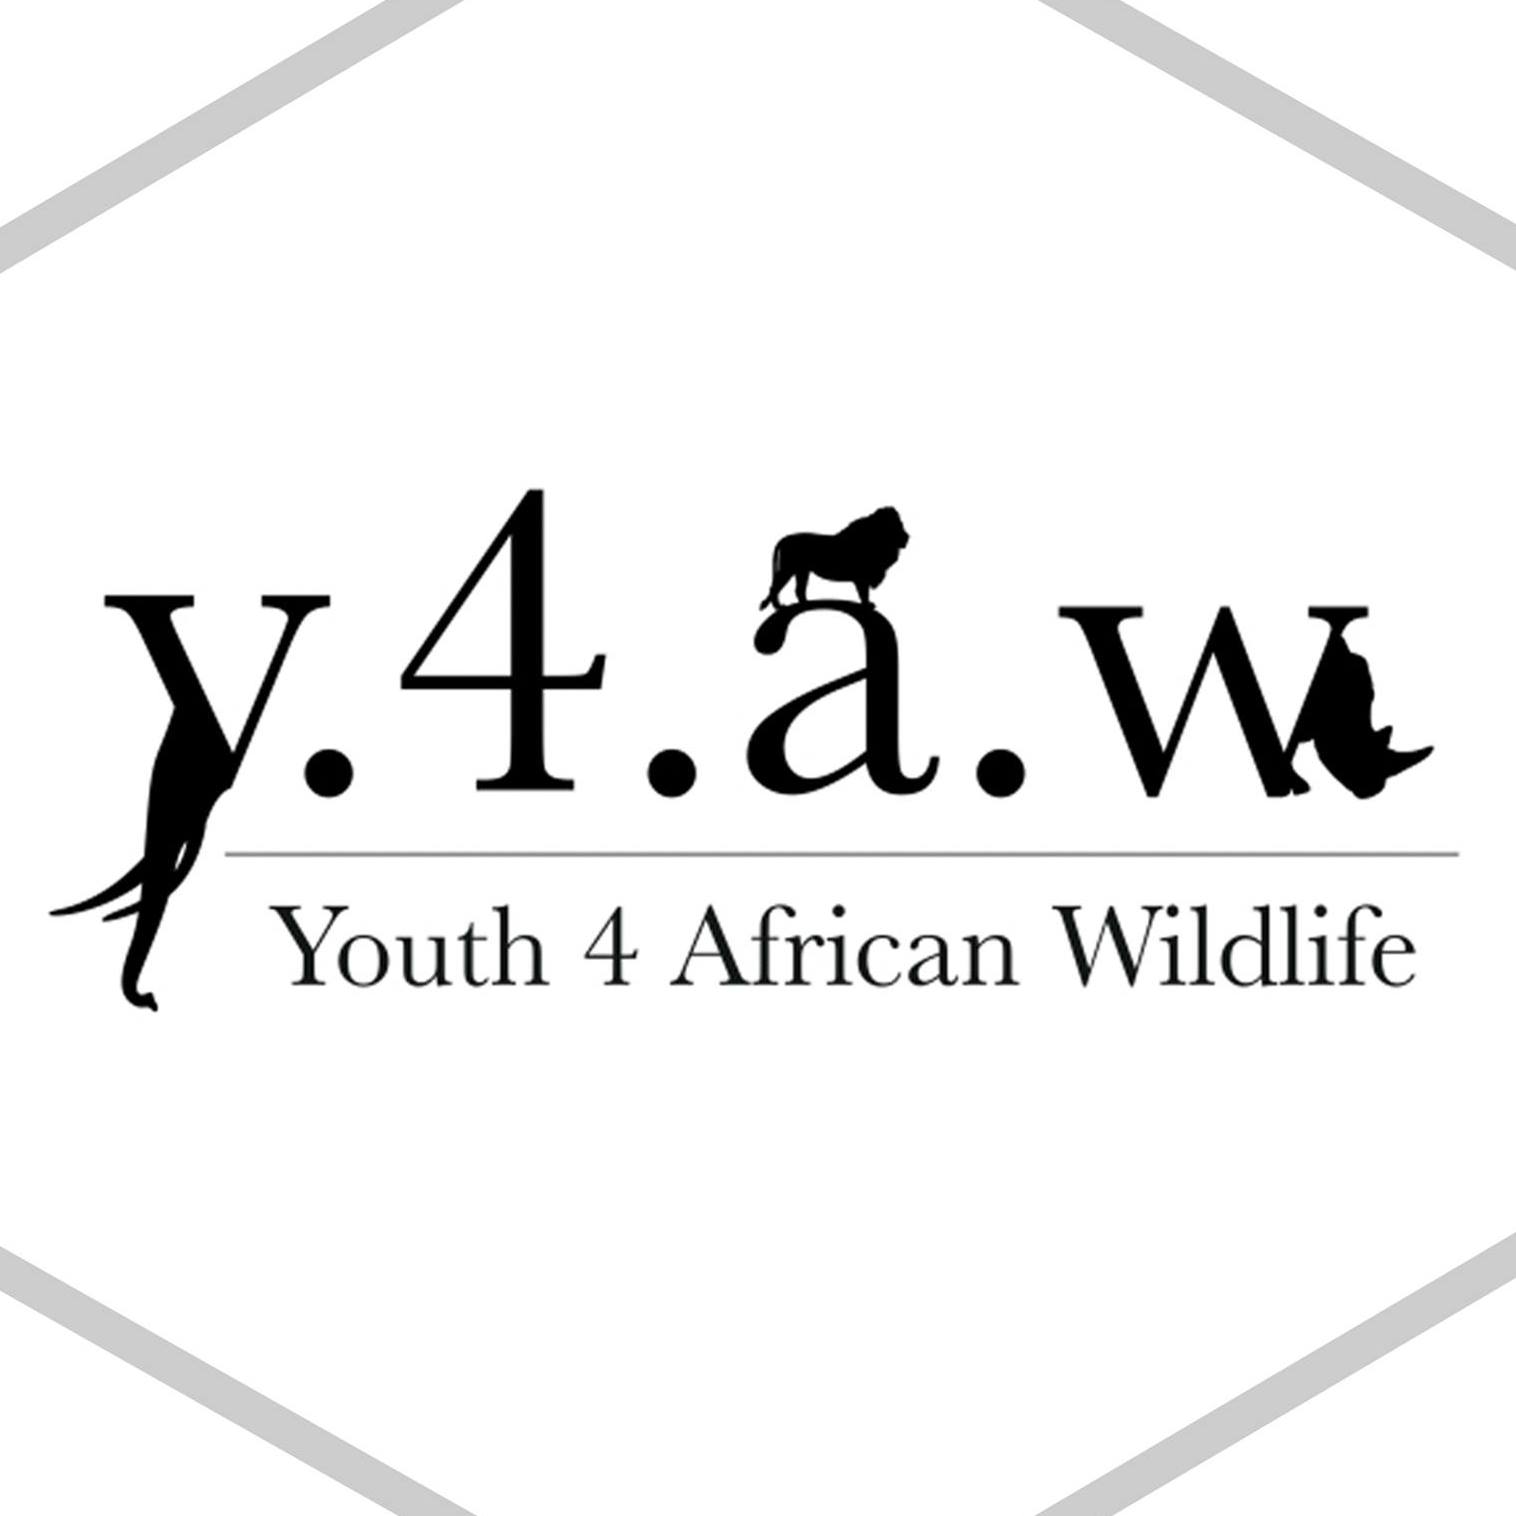 Youth for African Wildlife